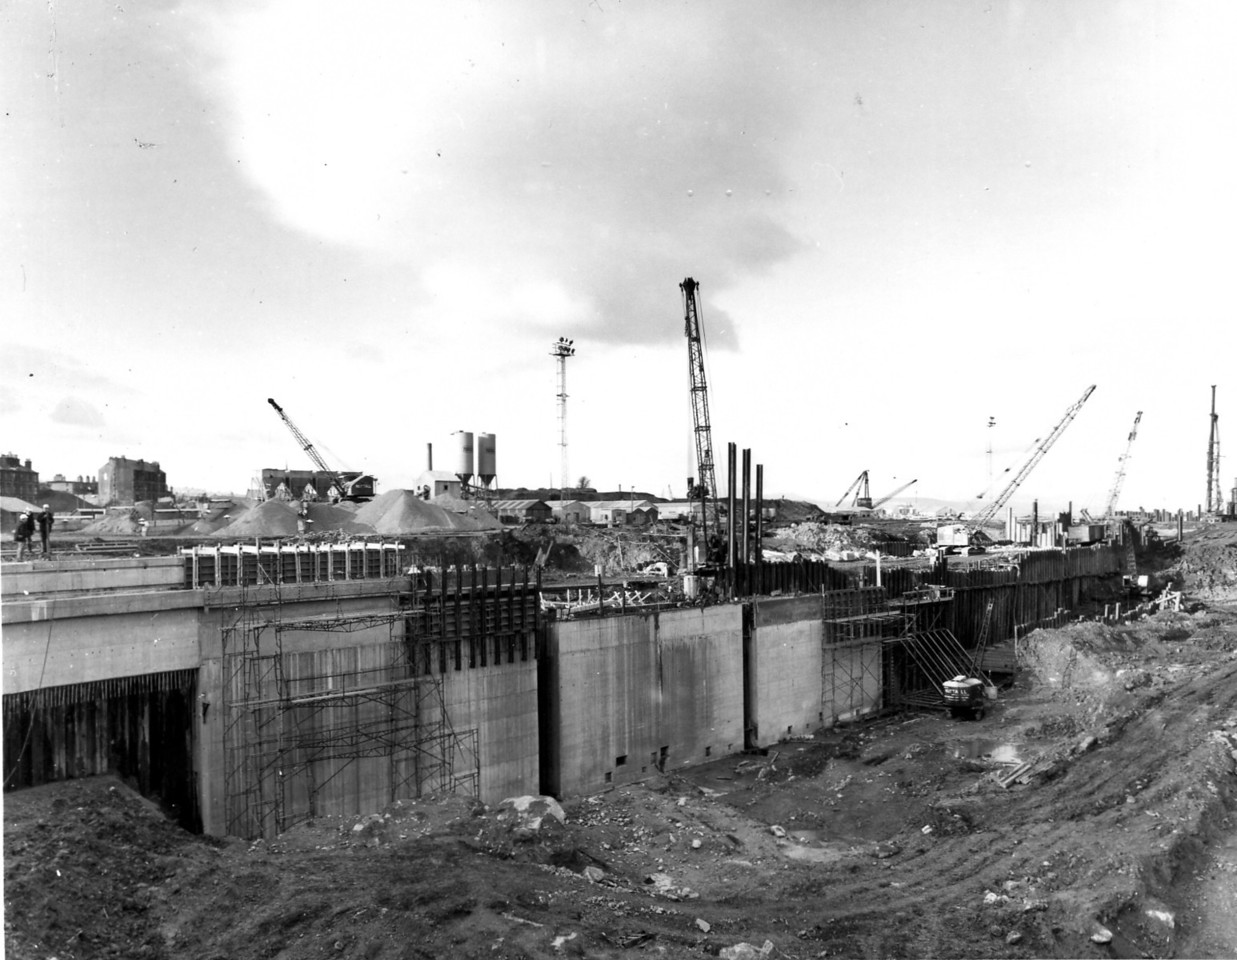 D066Dock wall and trench excavation - west side   31/12/1962